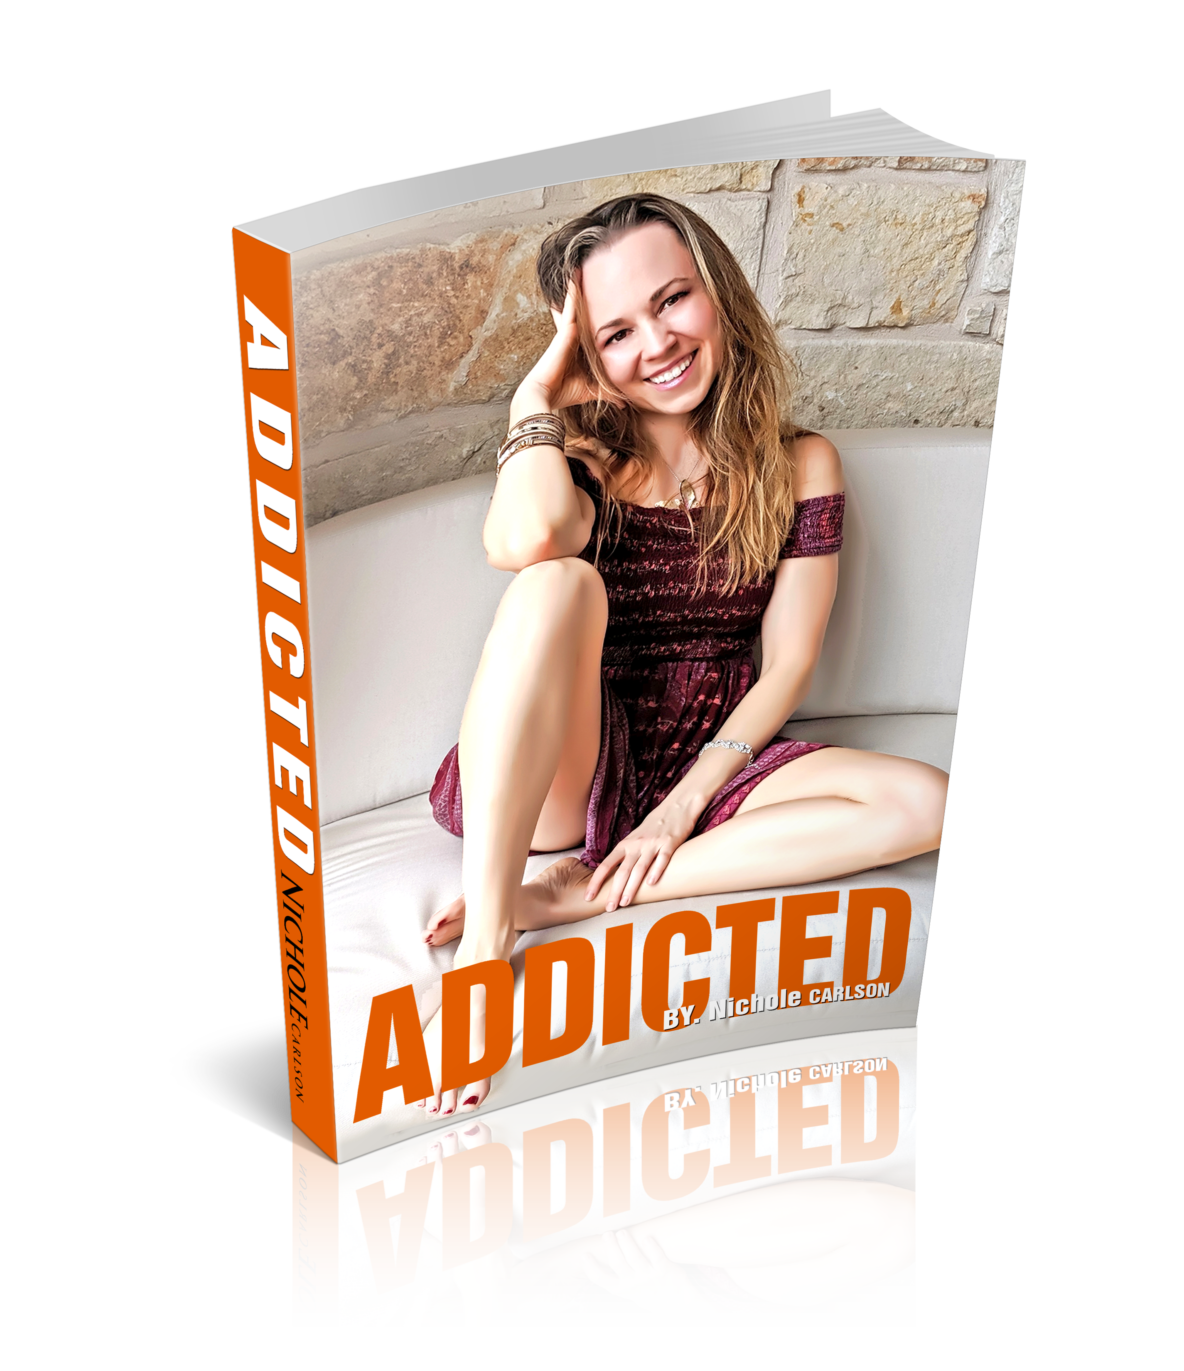 Nichole Carlson, Addiction the book, Adderall